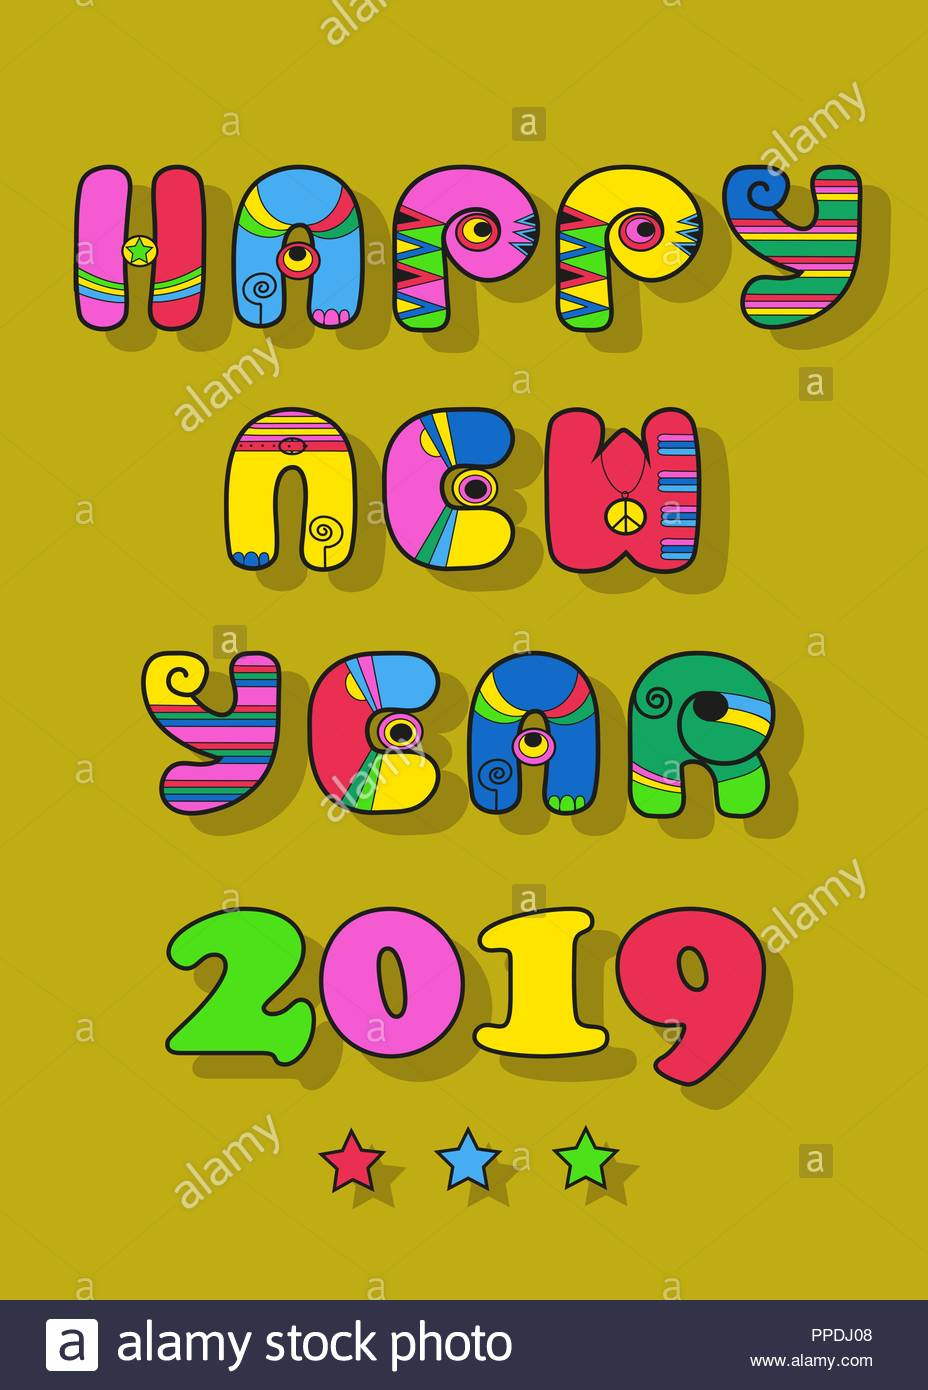 happy new year 2019 artistic cartoon alphabet with colorful decor yellow background with stars vector illustration